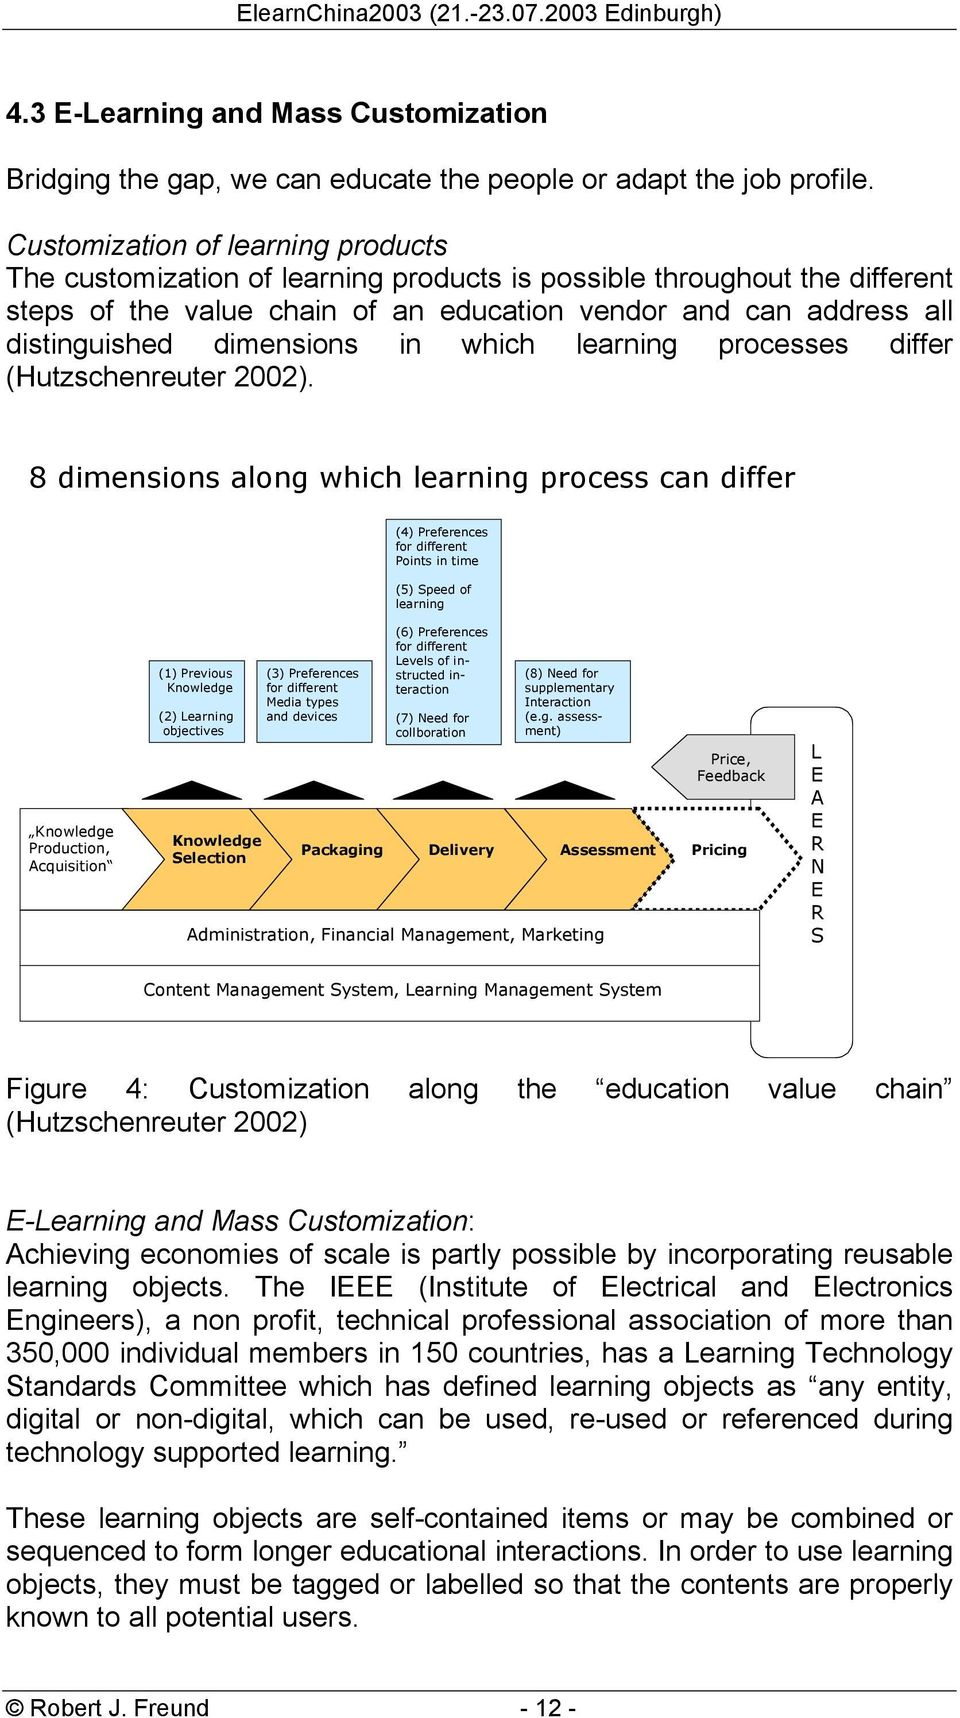 dimensions in which learning processes differ (Hutzschenreuter 2002).